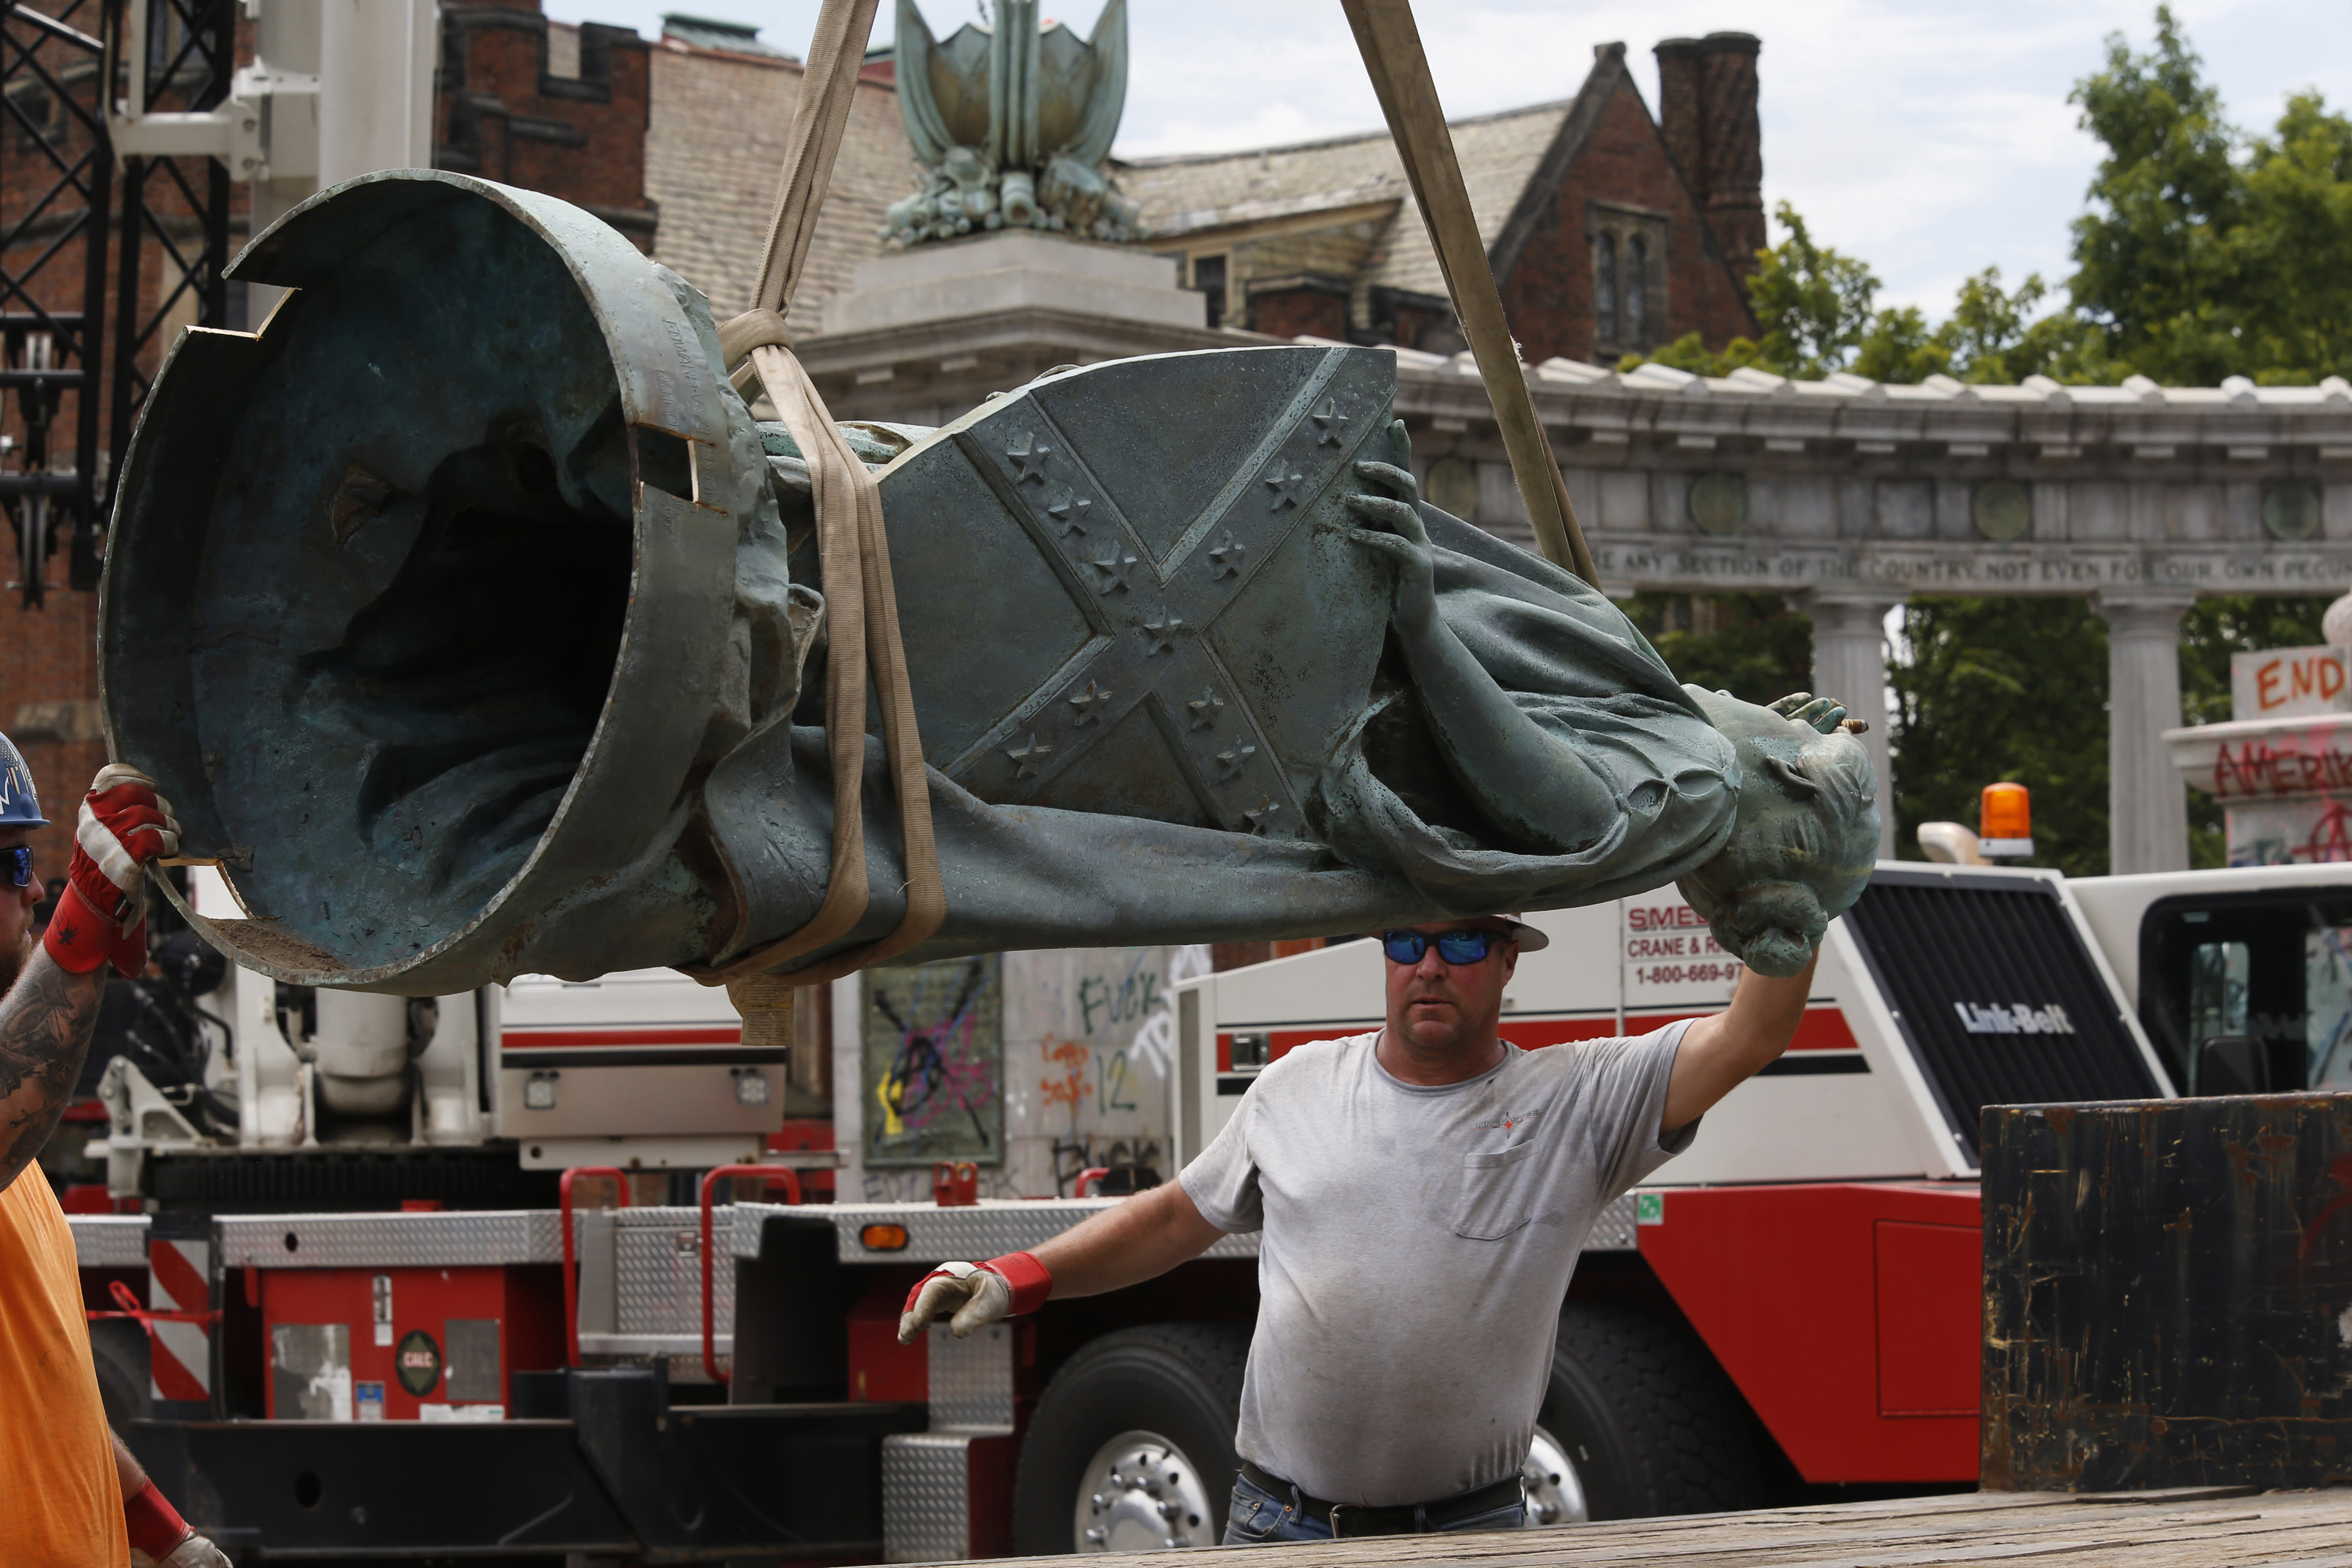 """A workman guides the statue from the Jefferson Davis monument onto a flatbed truck after it was removed from its pedestal on Monument Ave. in Richmond, Va., Wednesday, July 8, 2020. The figure was atop a 65 foot tall Doric column topped by a bronze figure called """"Vindicatrix,"""" also known as """"Miss Confederacy,"""" is the work of Edward Virginius Valentine. (Bob Brown/Richmond Times-Dispatch via AP)"""